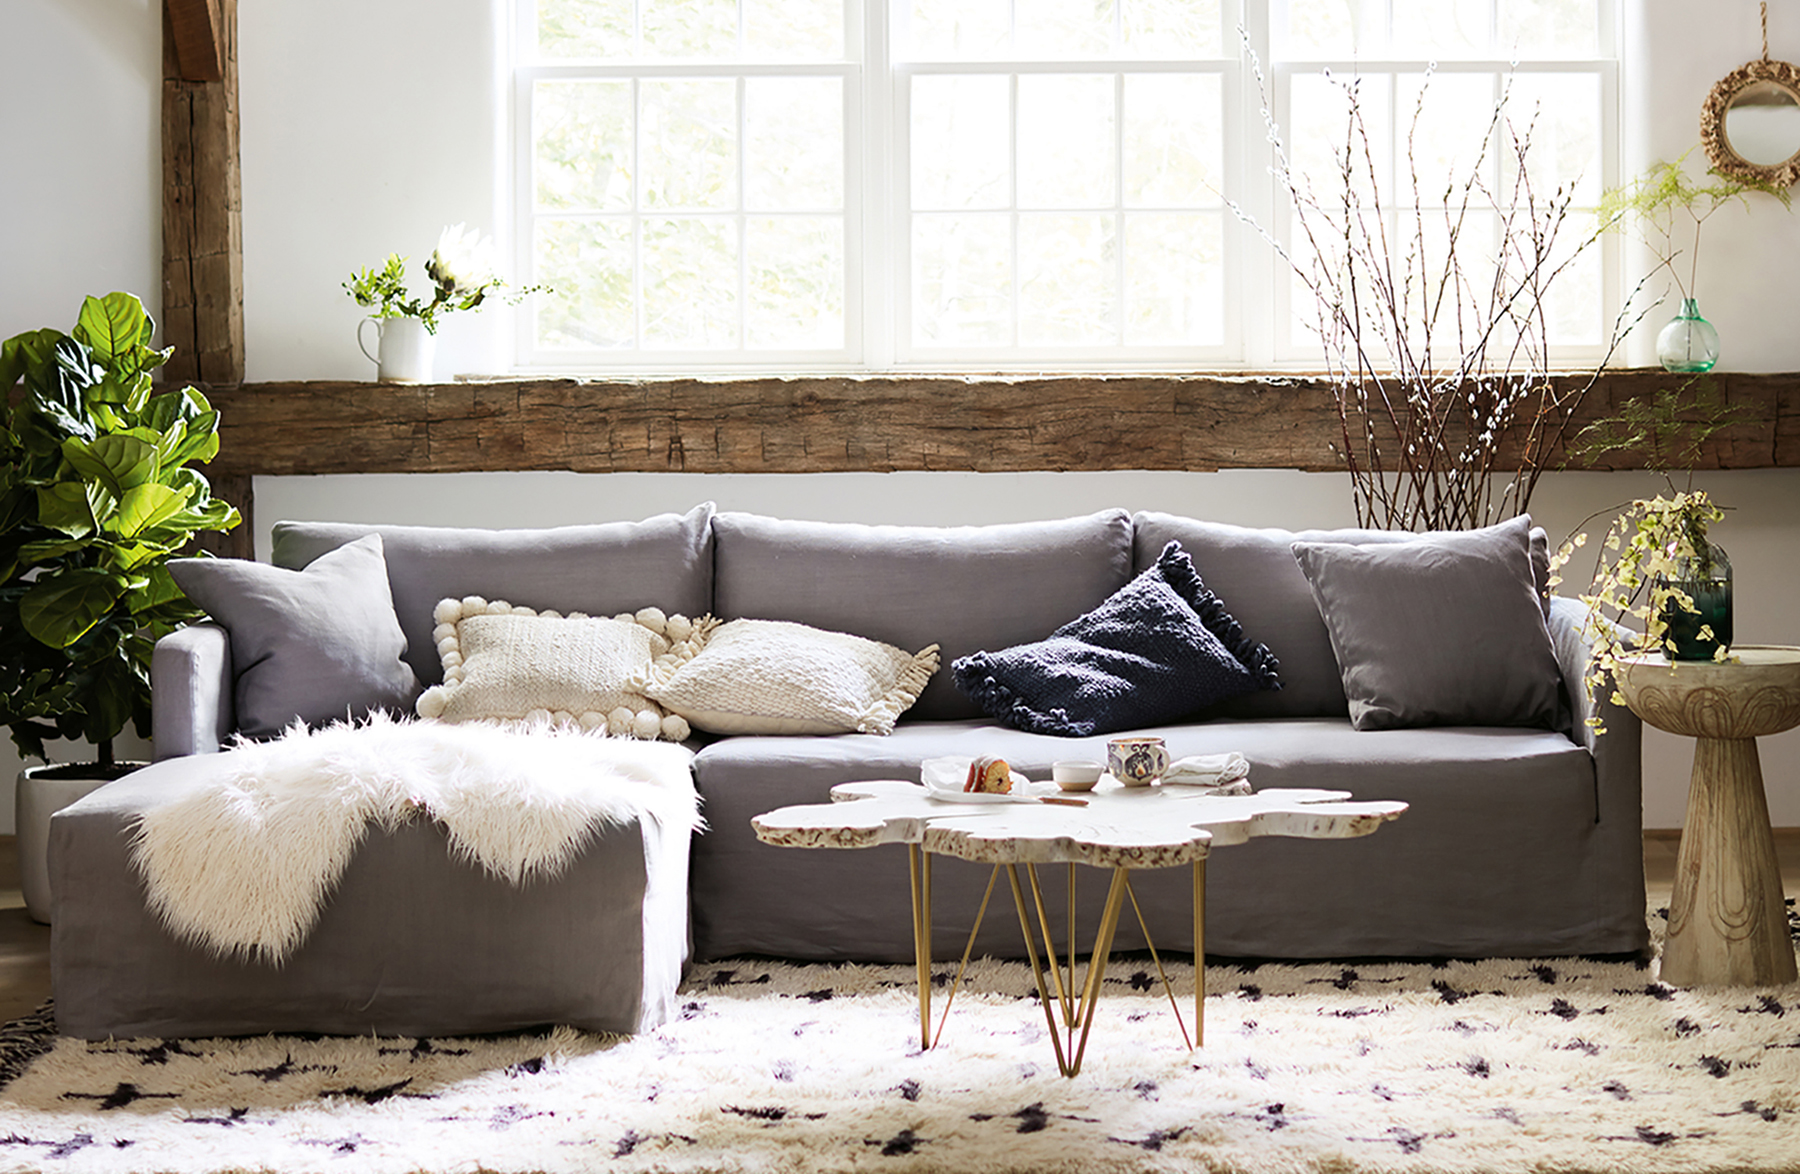 00078b088c44b Anthropologie's New Home Collection Just Dropped With Over 2,500 ...